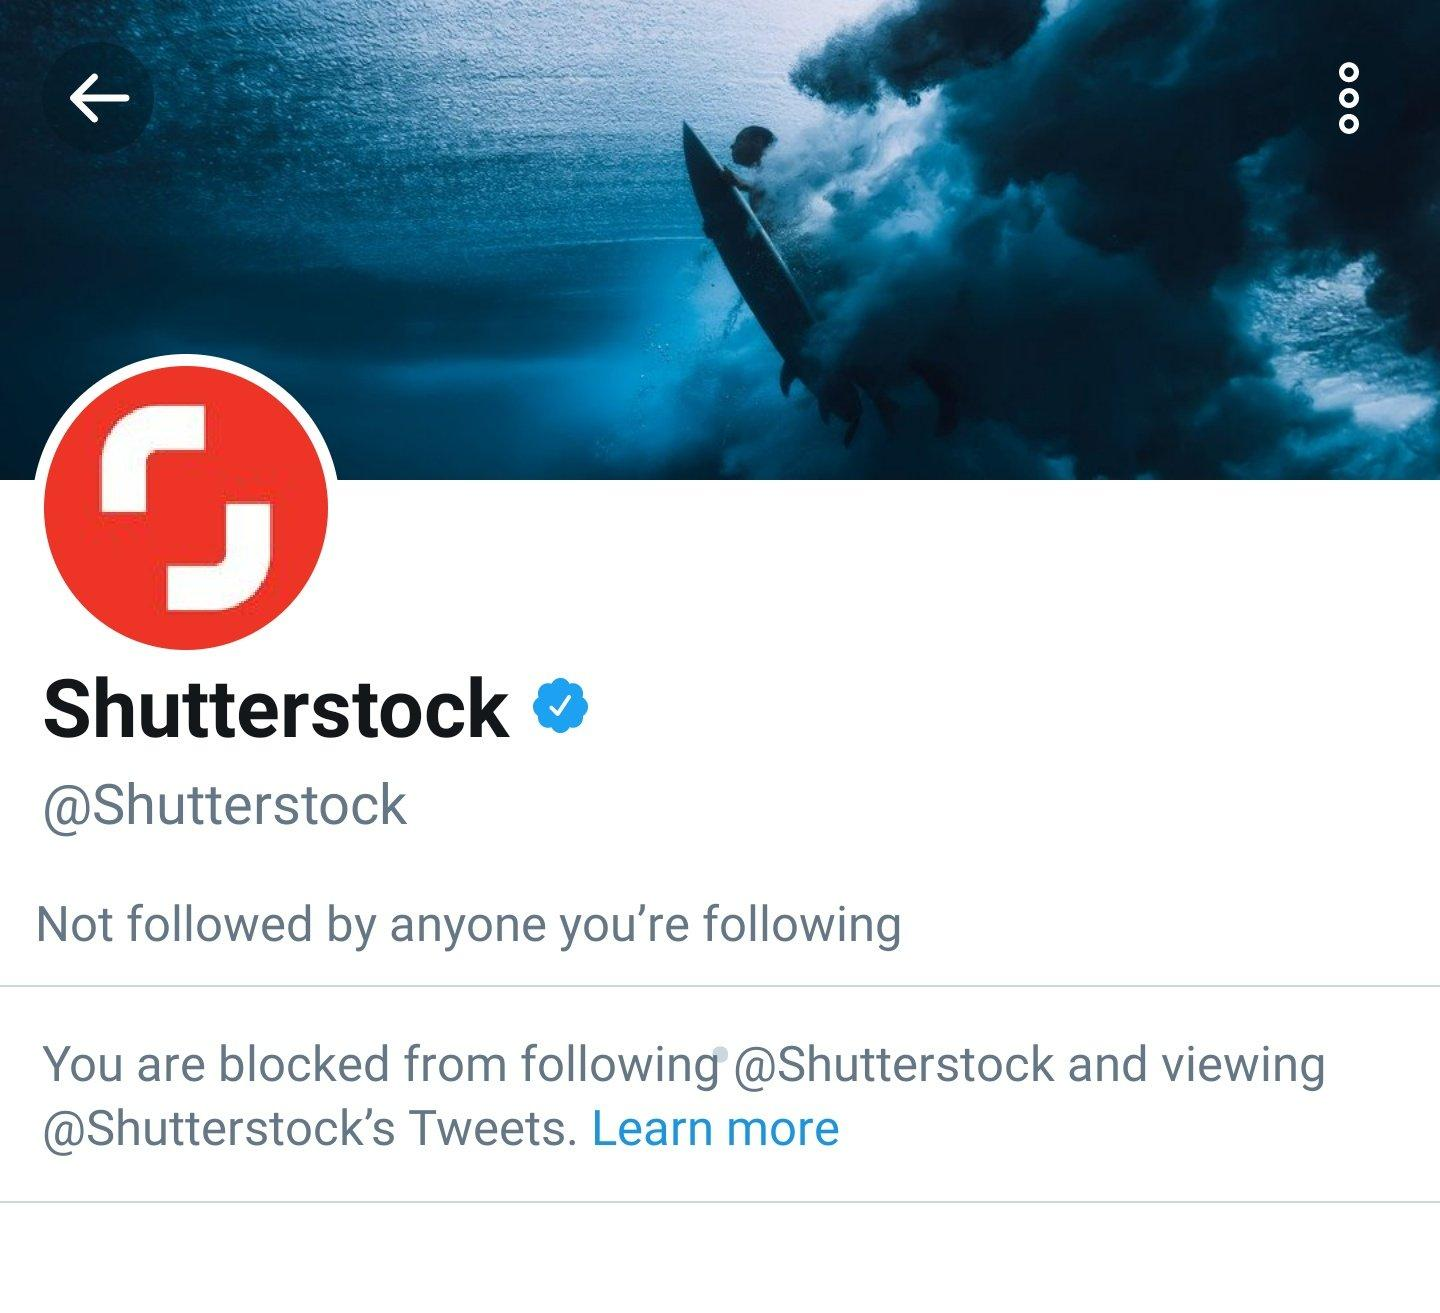 Screenshot of shutterstock blocking my account since I talk about their censorship in china